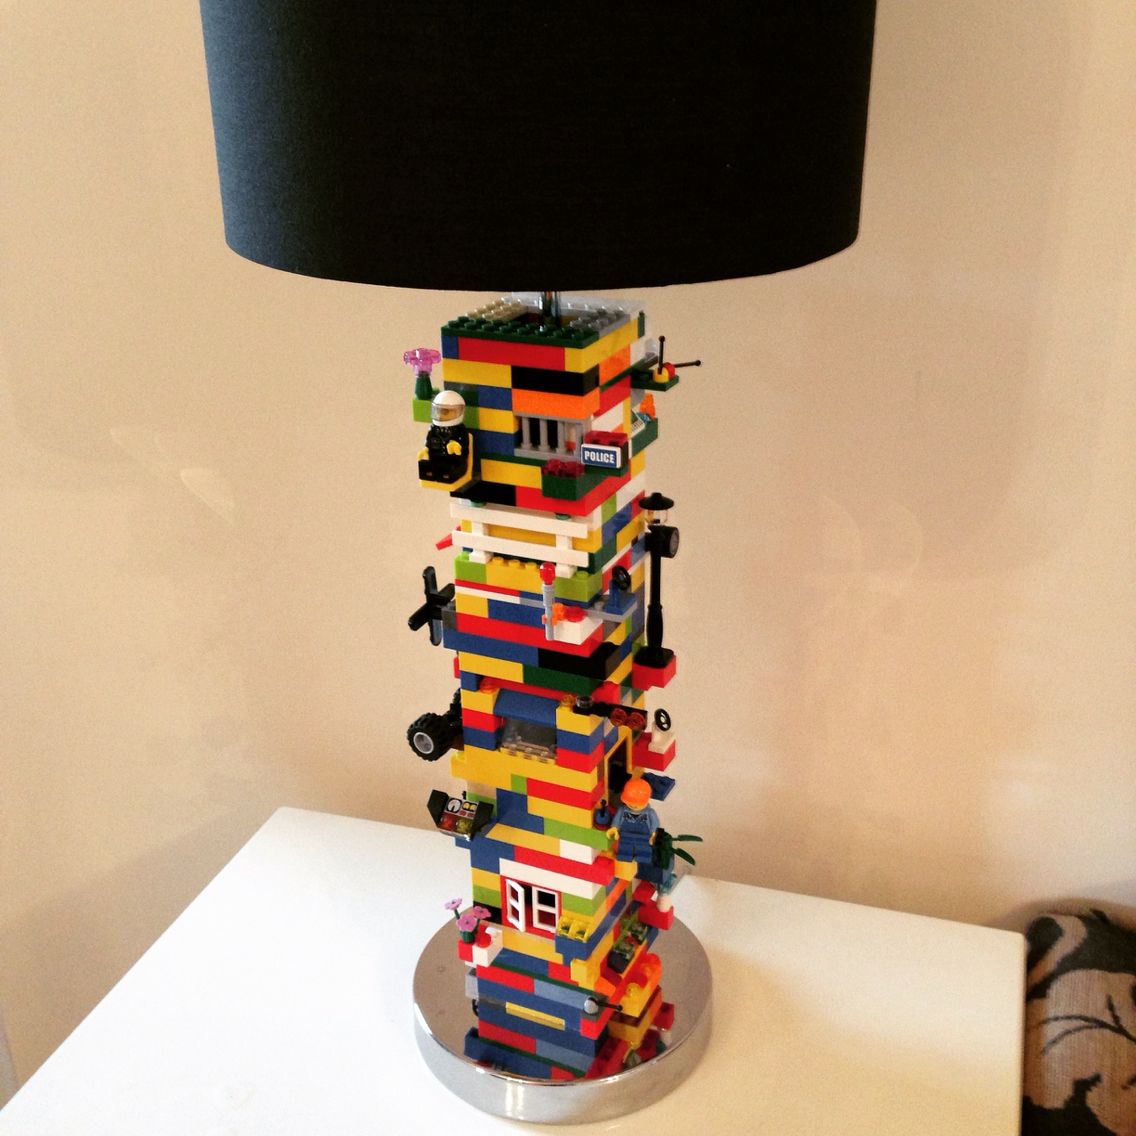 diy lego lamp for the playroom m bel pinterest spielzimmer lampen und kinderzimmer. Black Bedroom Furniture Sets. Home Design Ideas